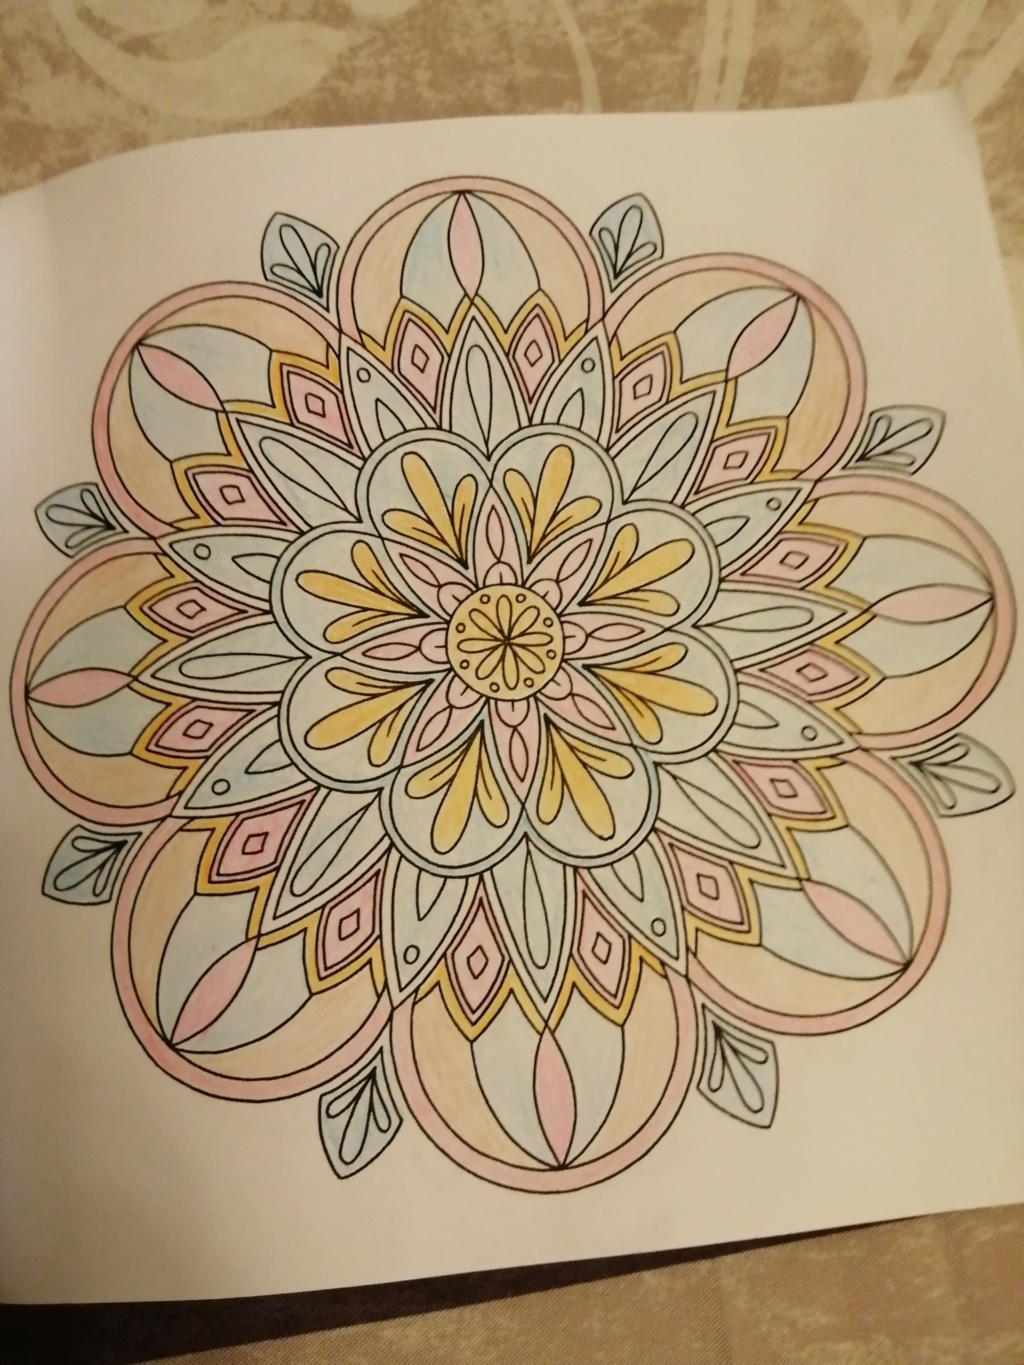 coloriage anti-stress pour adulte - Page 15 00510